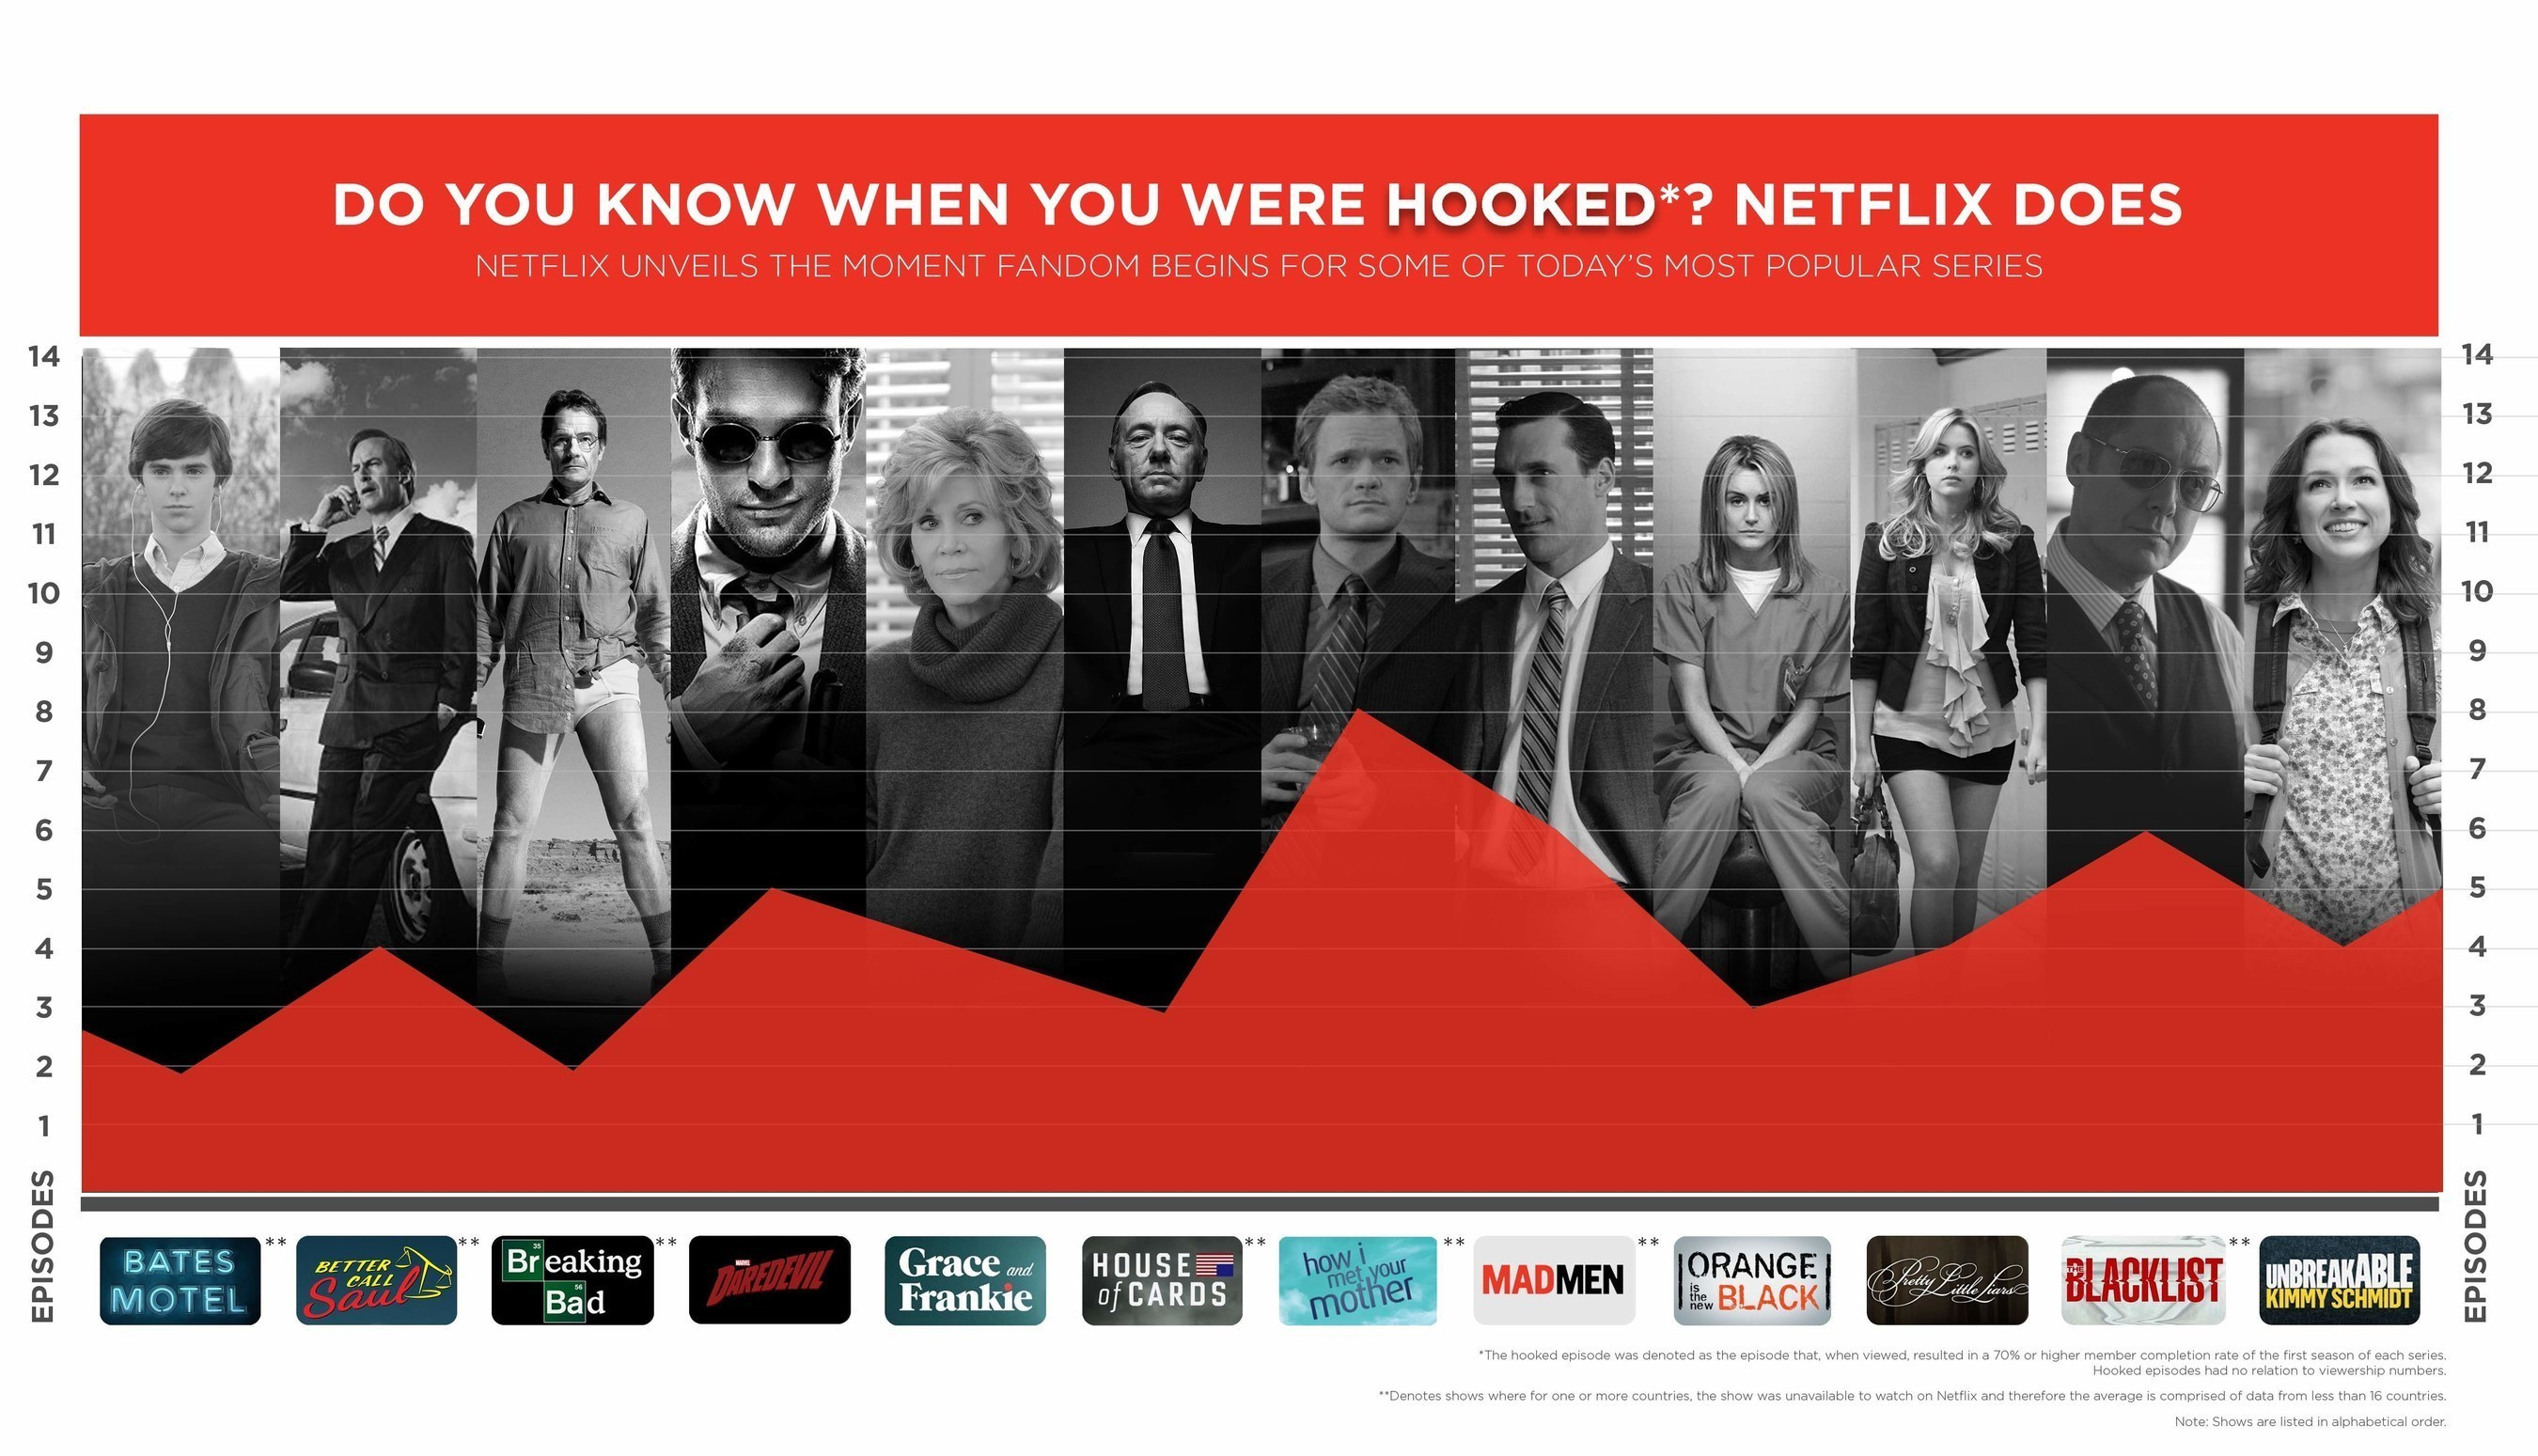 Netflix knows the episodes that make you binge-watch the series